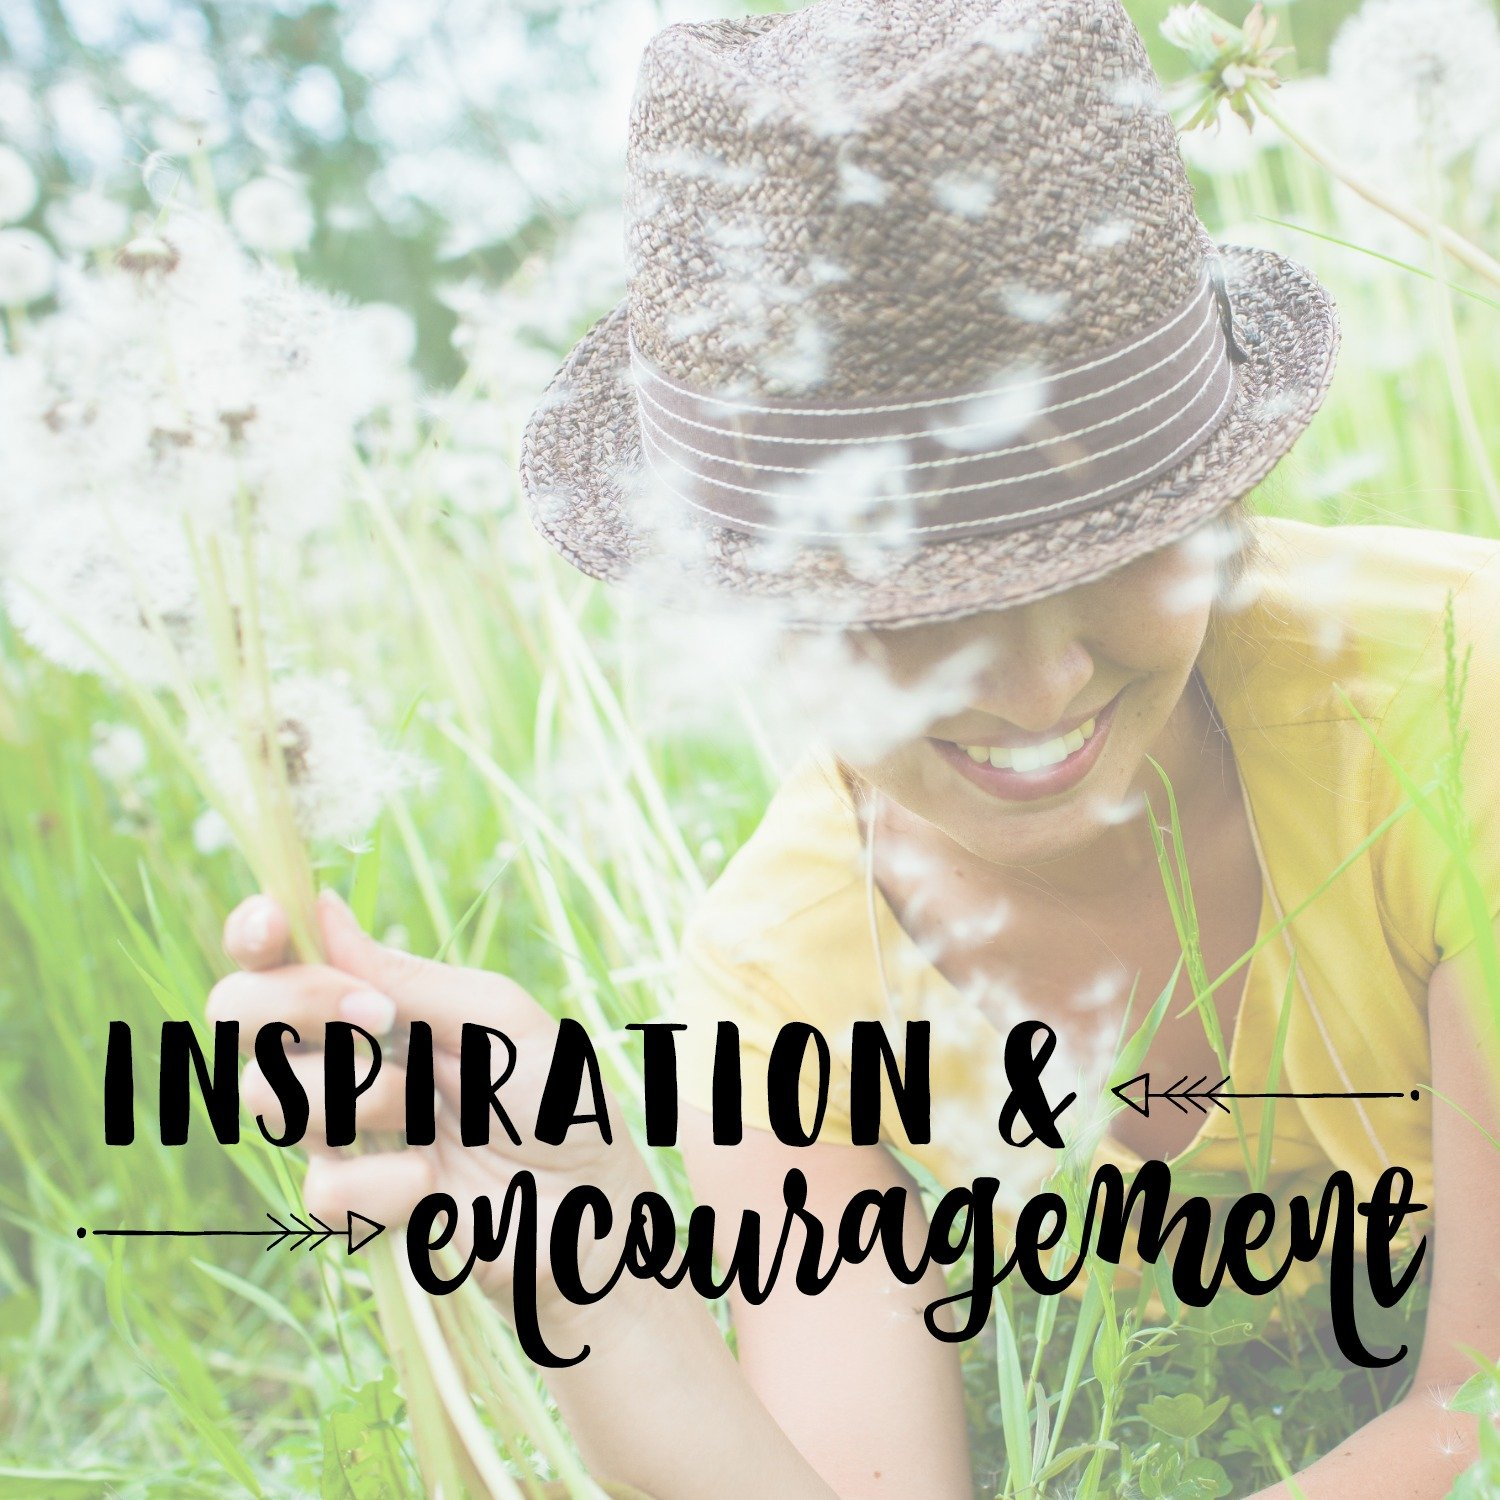 Inspiration & Encouragement